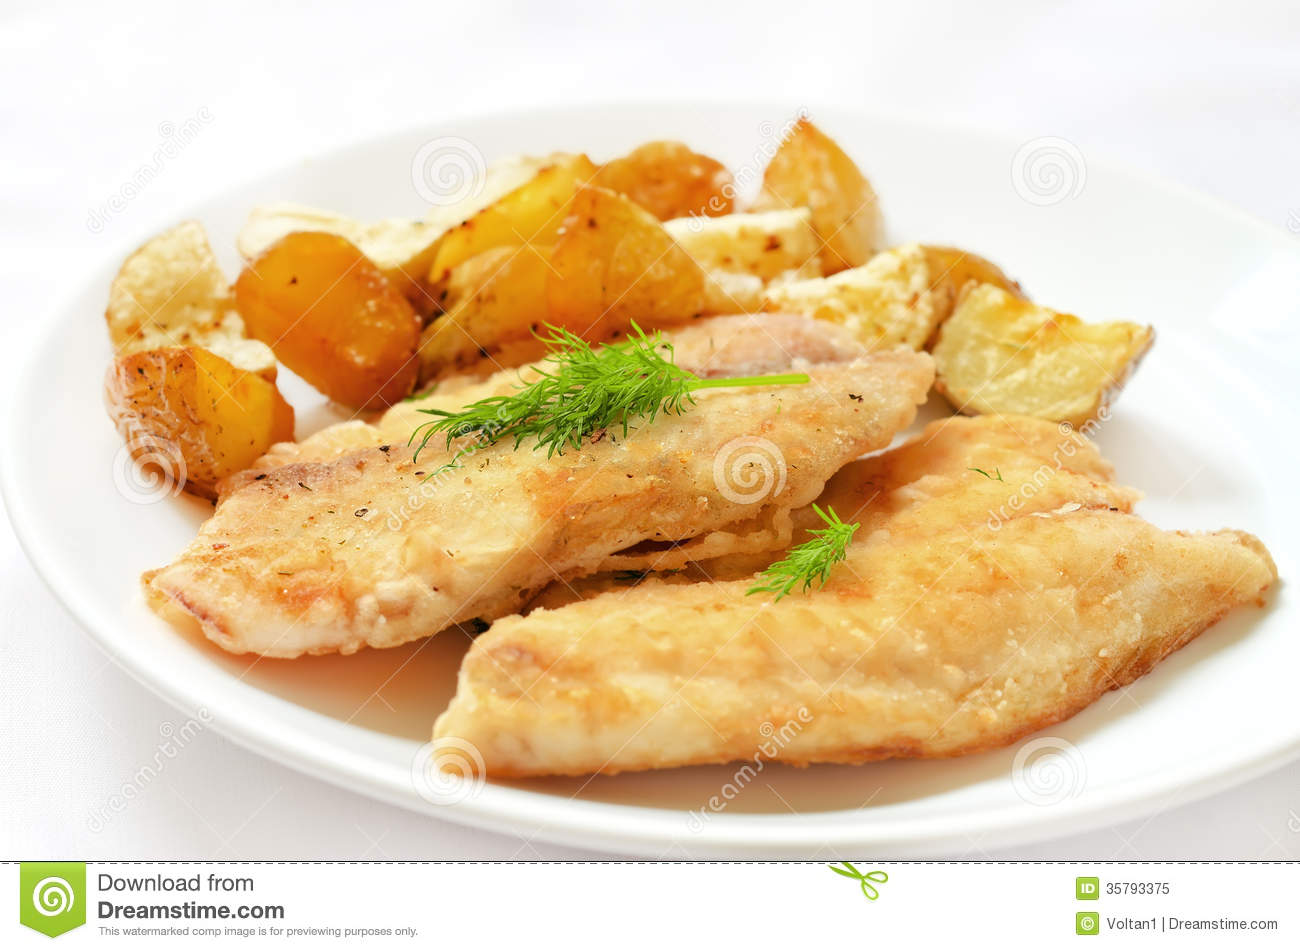 Fried fish fillet with baked potatoes stock image image for How to fry fish fillet